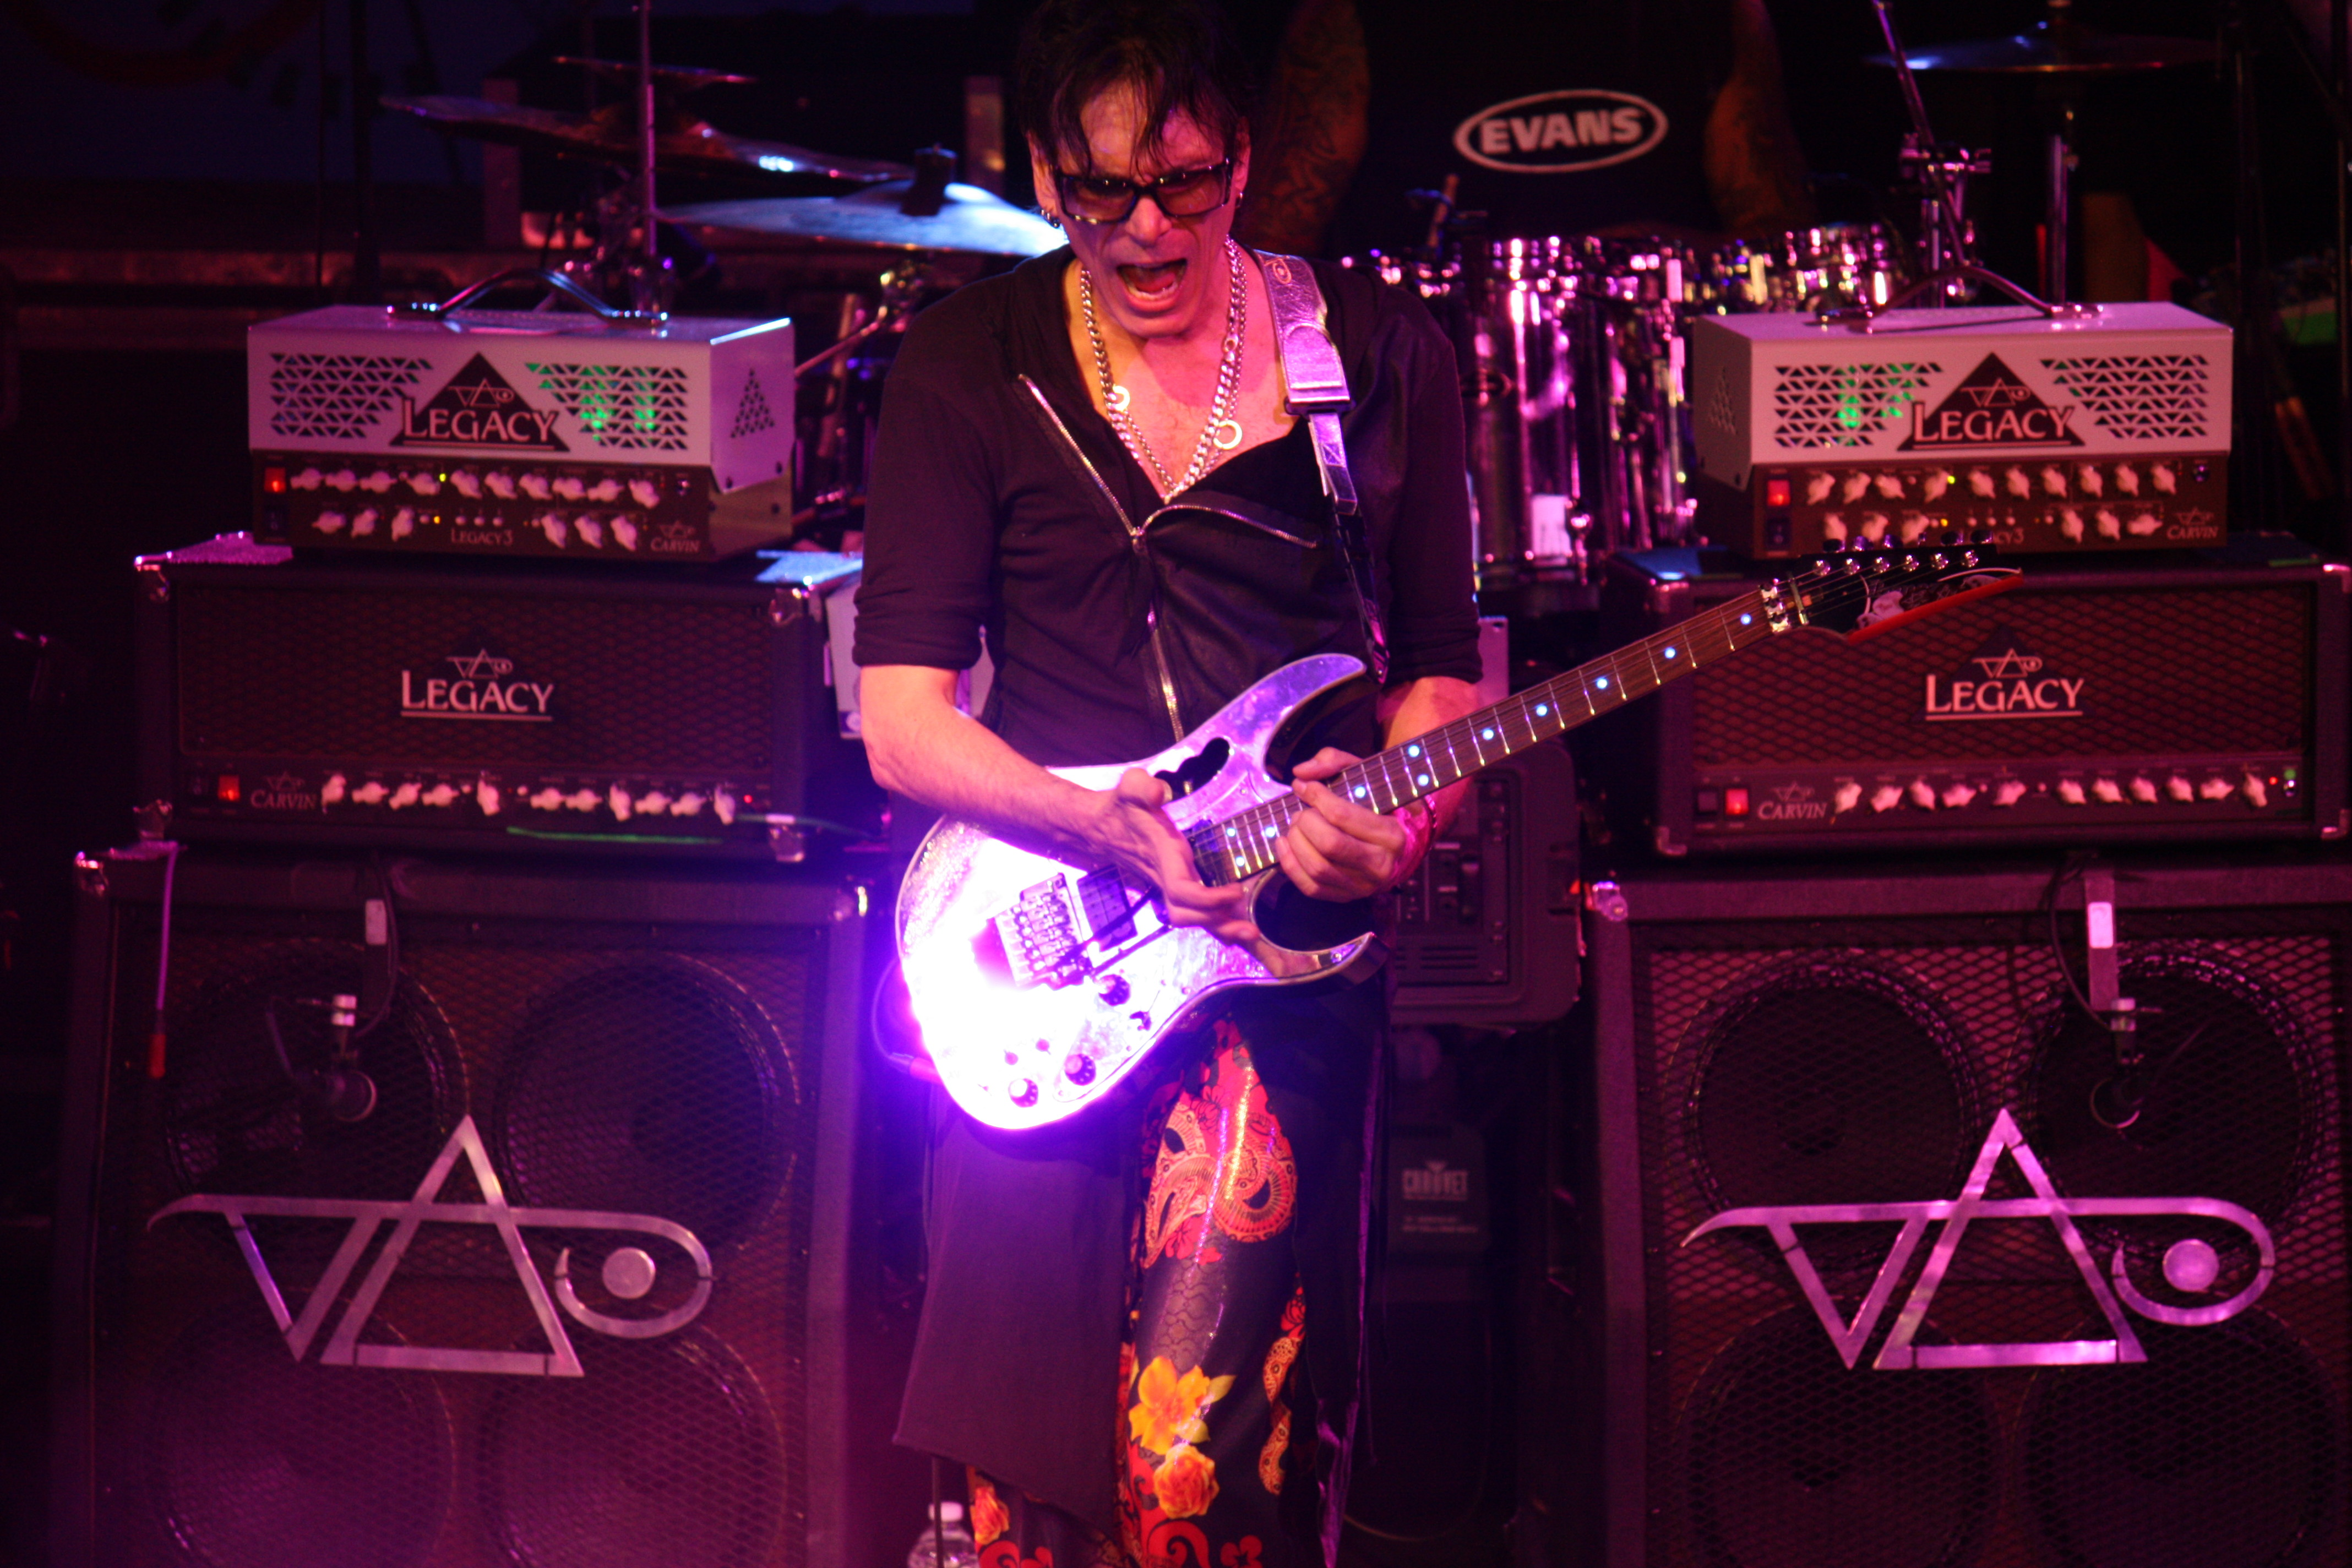 Steve vai live show review manta ray pictures i think vai realizes in this tough economy there is no guarantee about how many people can go to see a live show but long island turned out to support him fandeluxe Gallery